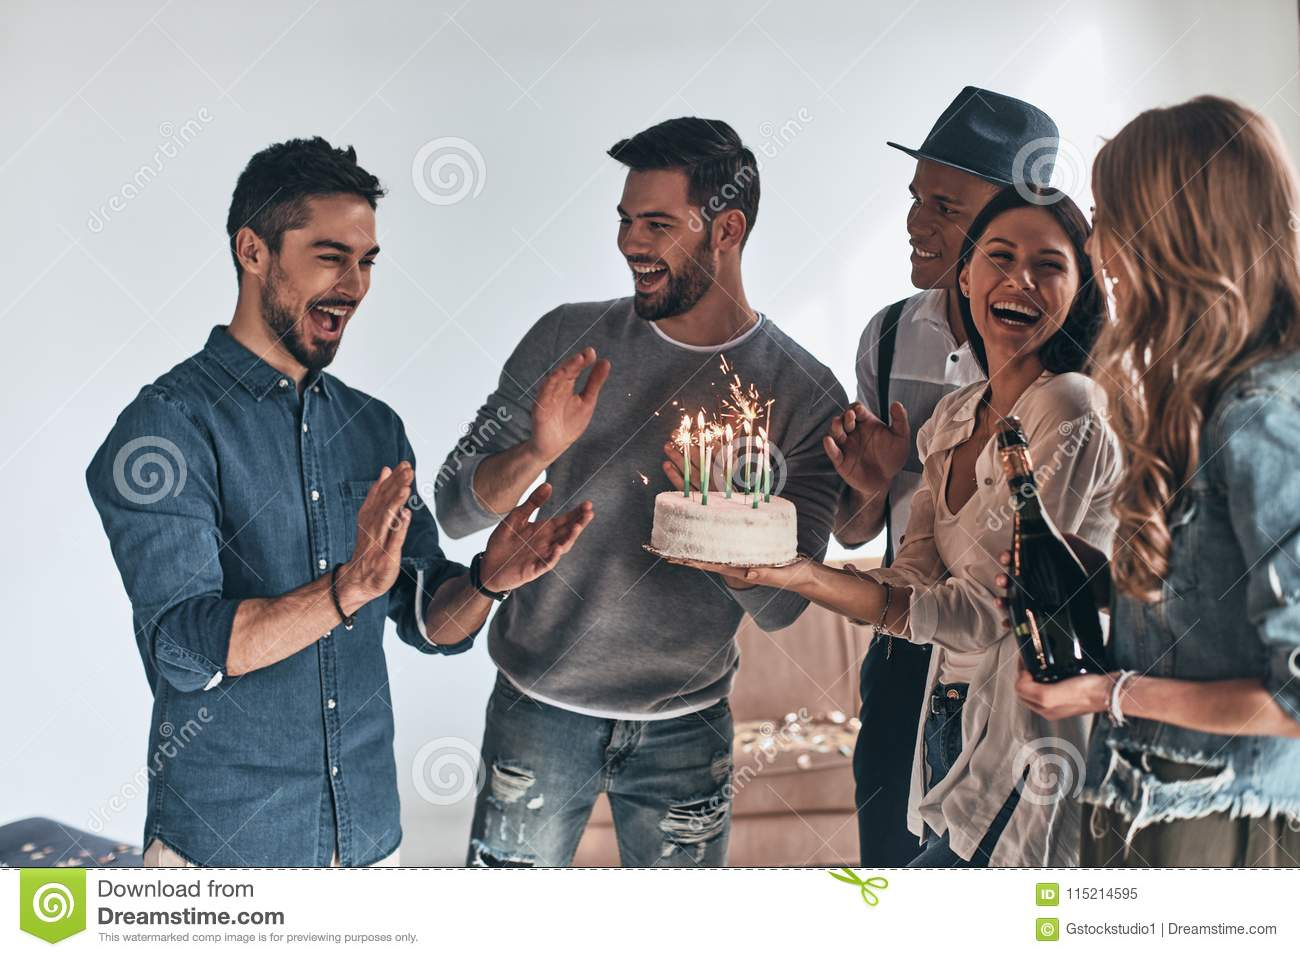 Surprise! Happy young man gesturing and smiling while celebrating birthday among friends